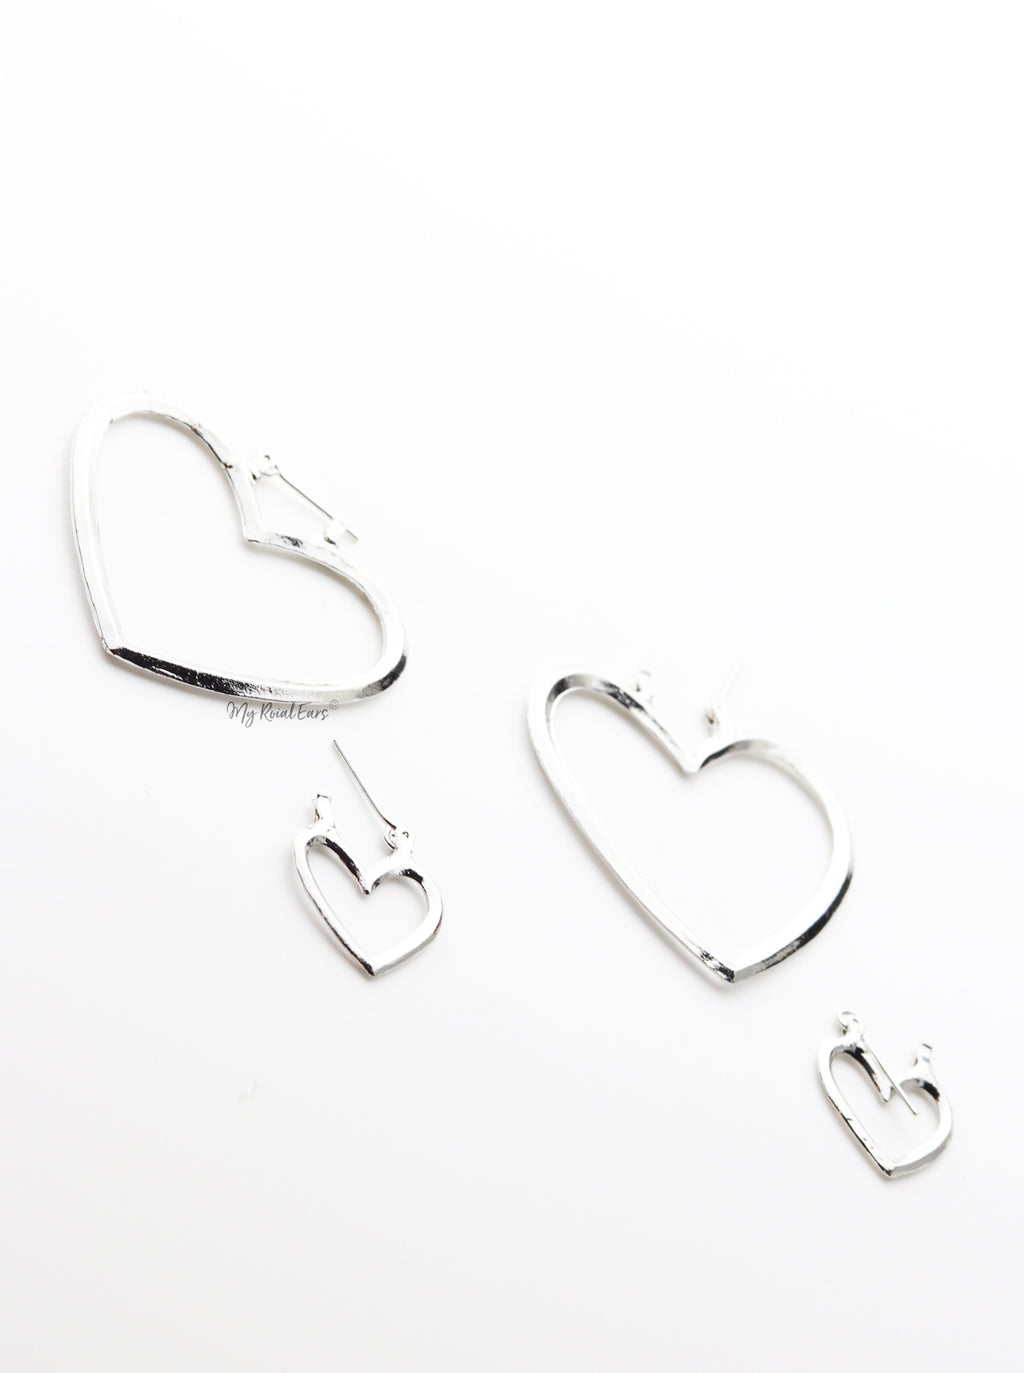 Thistle silver- Two Heart Shaped Hoop Earrings - My Roial Ears LTD